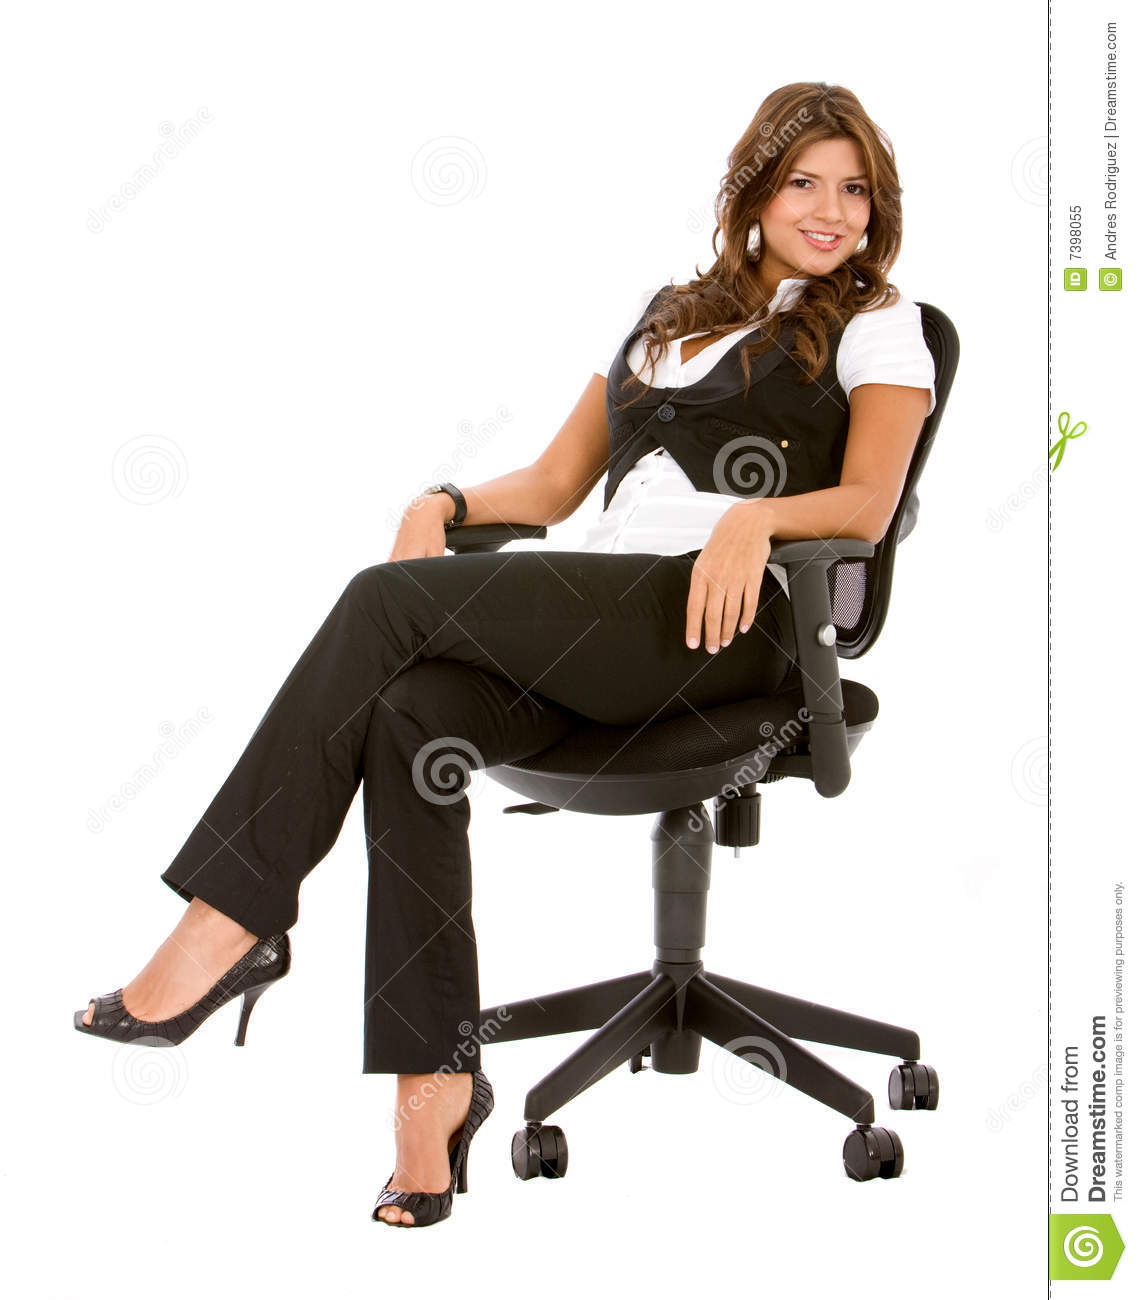 woman sitting in chair mesh gaming pm3000 business royalty free stock photo image